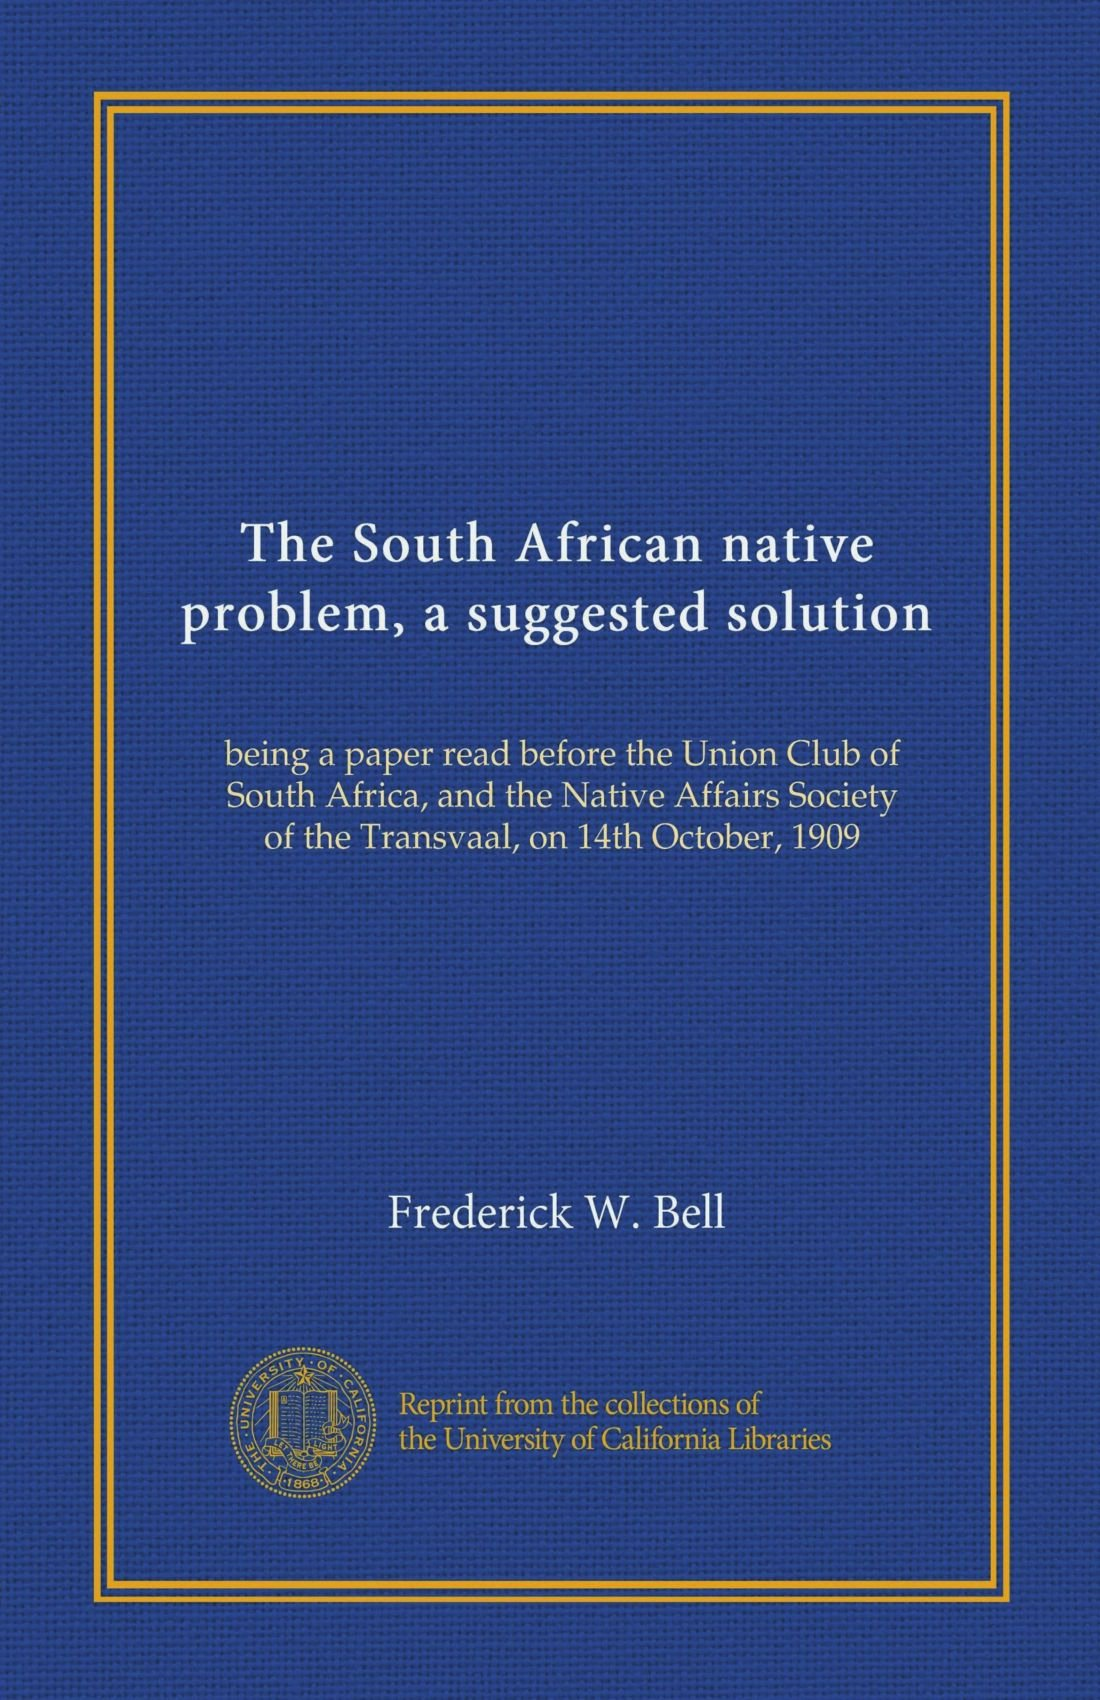 Read Online The South African native problem, a suggested solution: being a paper read before the Union Club of South Africa, and the Native Affairs Society of the Transvaal, on 14th October, 1909 pdf epub